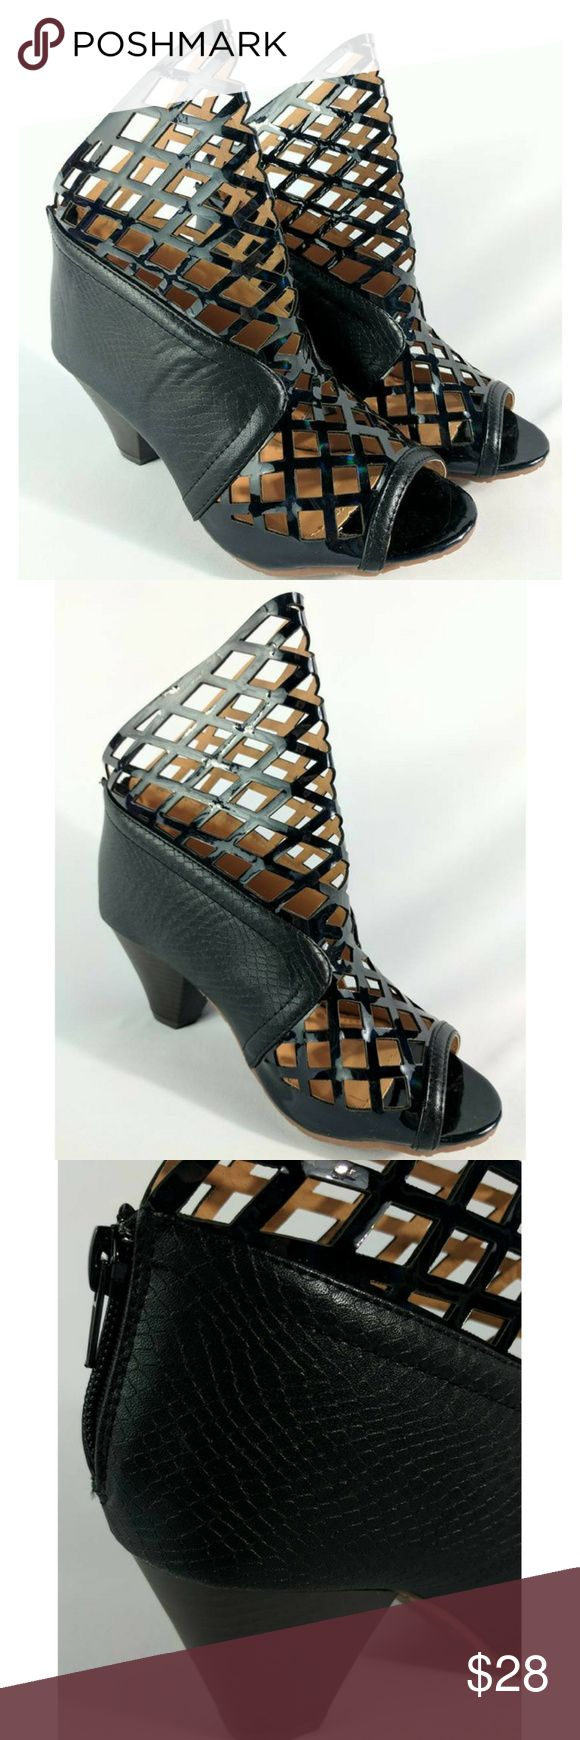 """Caged Metallic Charming Lady Peep Toe Shoes NEW PRICE FIRM. BUNDLE TO SAVE. Faux leather snake print on solid portions and patent leather appearance on cage cutout portion. Peep toe. Zippers on the back. Includes a set of heel cap replacements. 9"""" from floor to tallest point. Sz 7 Width at ball of foot inside is 3-1/8"""". Length inside from toe to heel is 9"""" with the slope. Sz 7.5 Width at ball of foot inside is 3-1/4"""". Length inside from toe to heel is 9-3/4"""" They run fairly true to size…"""